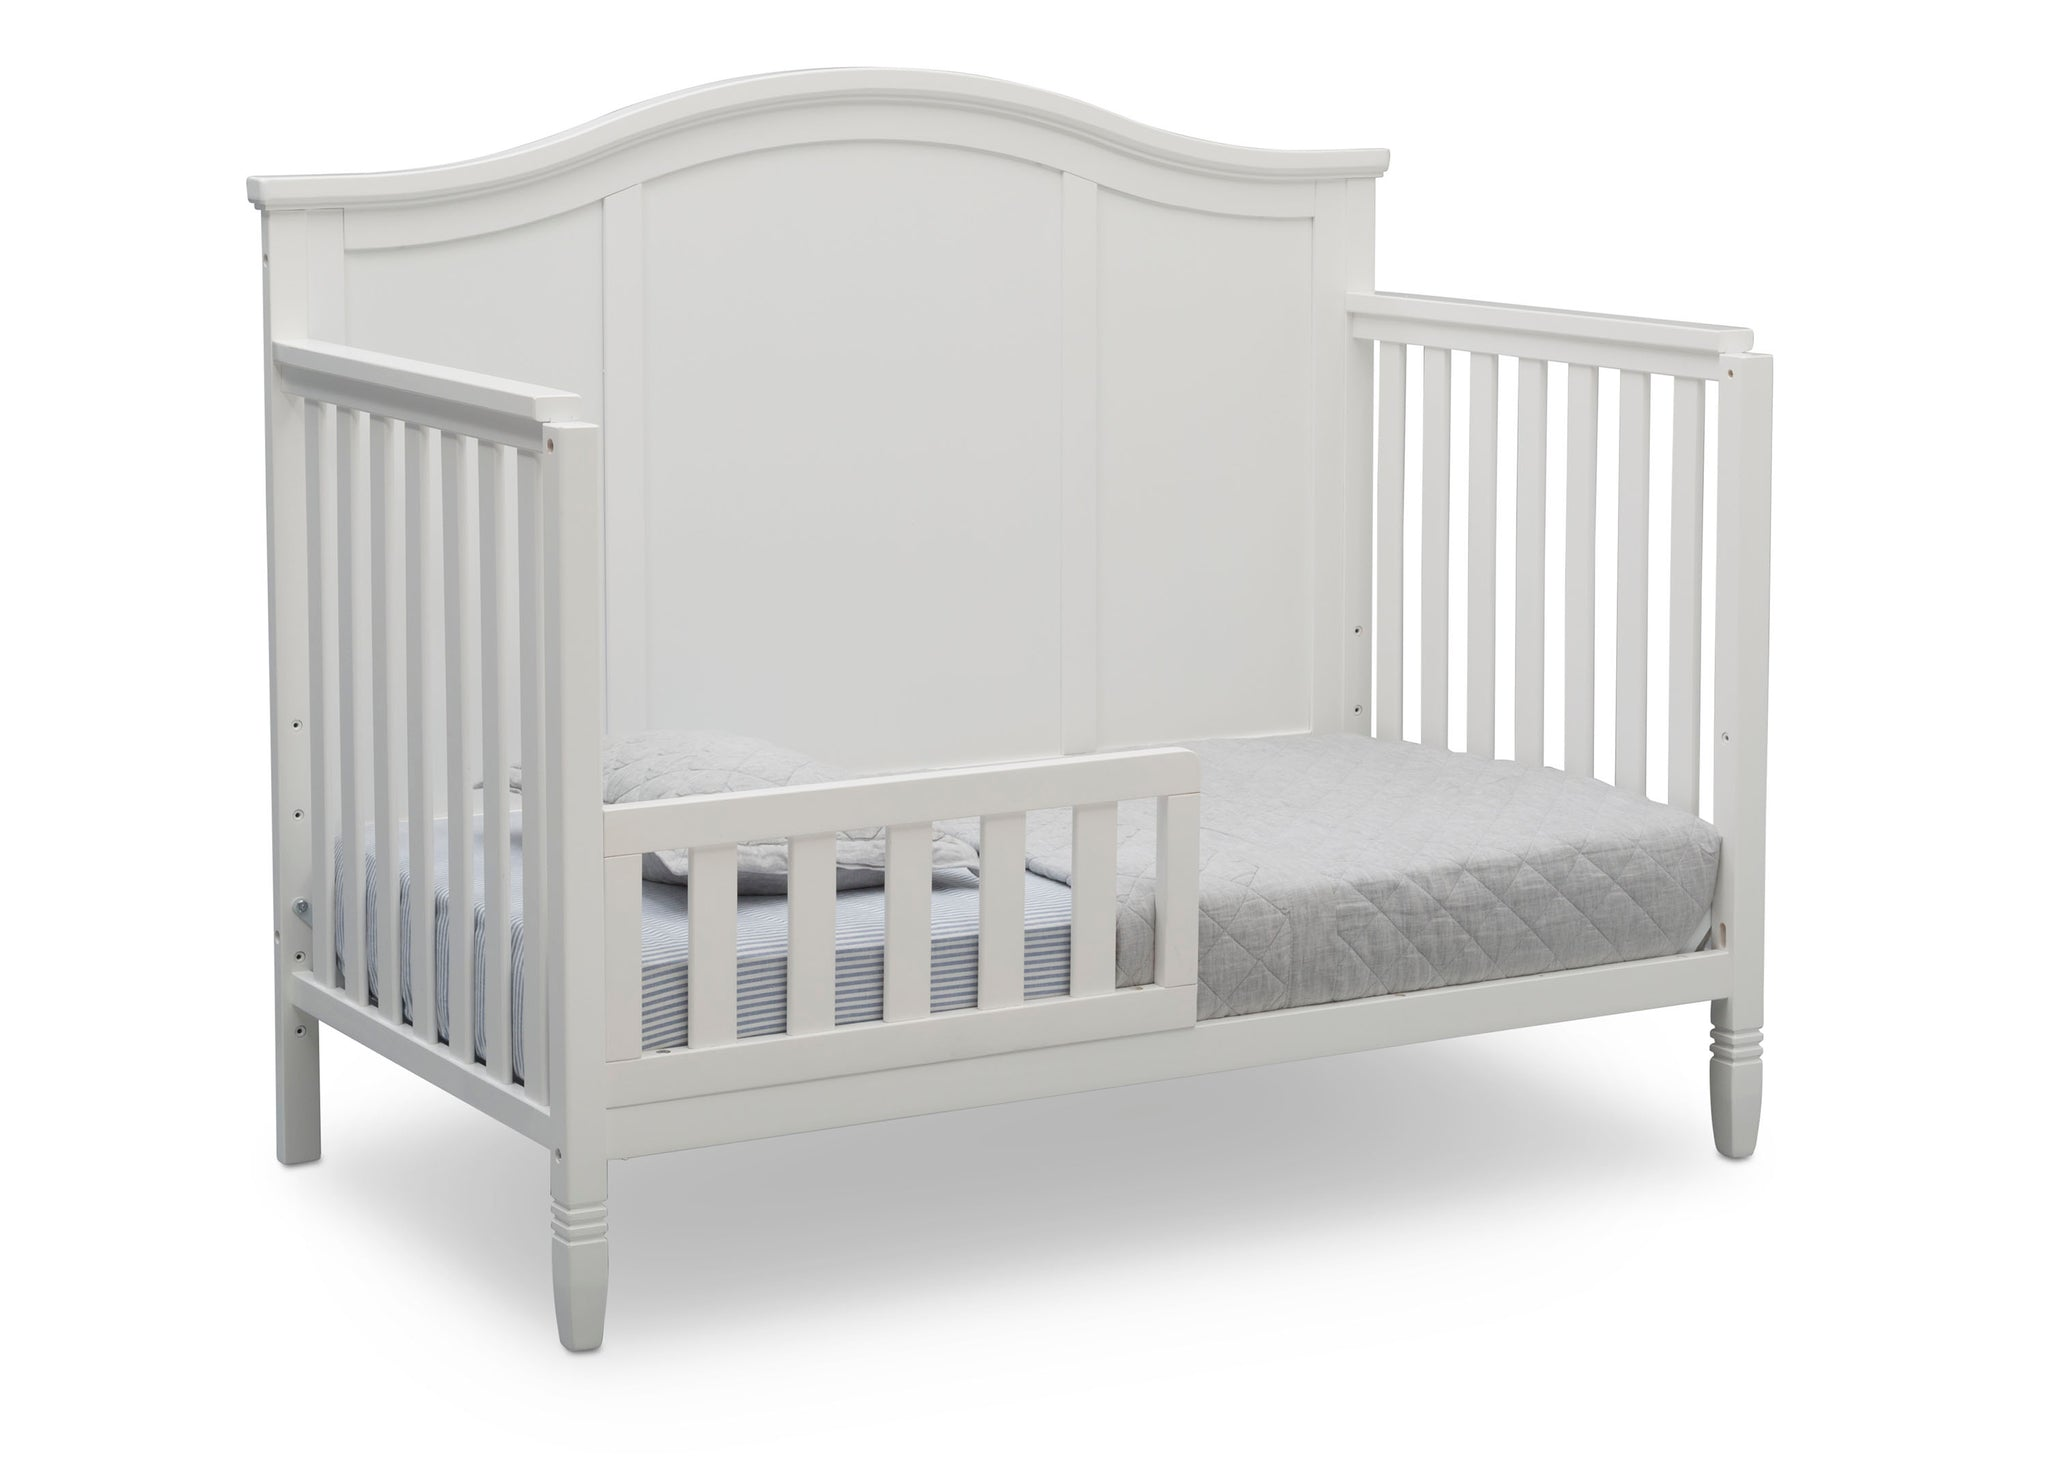 Delta Children Bianca White (130) Madrid 4-in-1 Crib, Toddler Bed Silo View